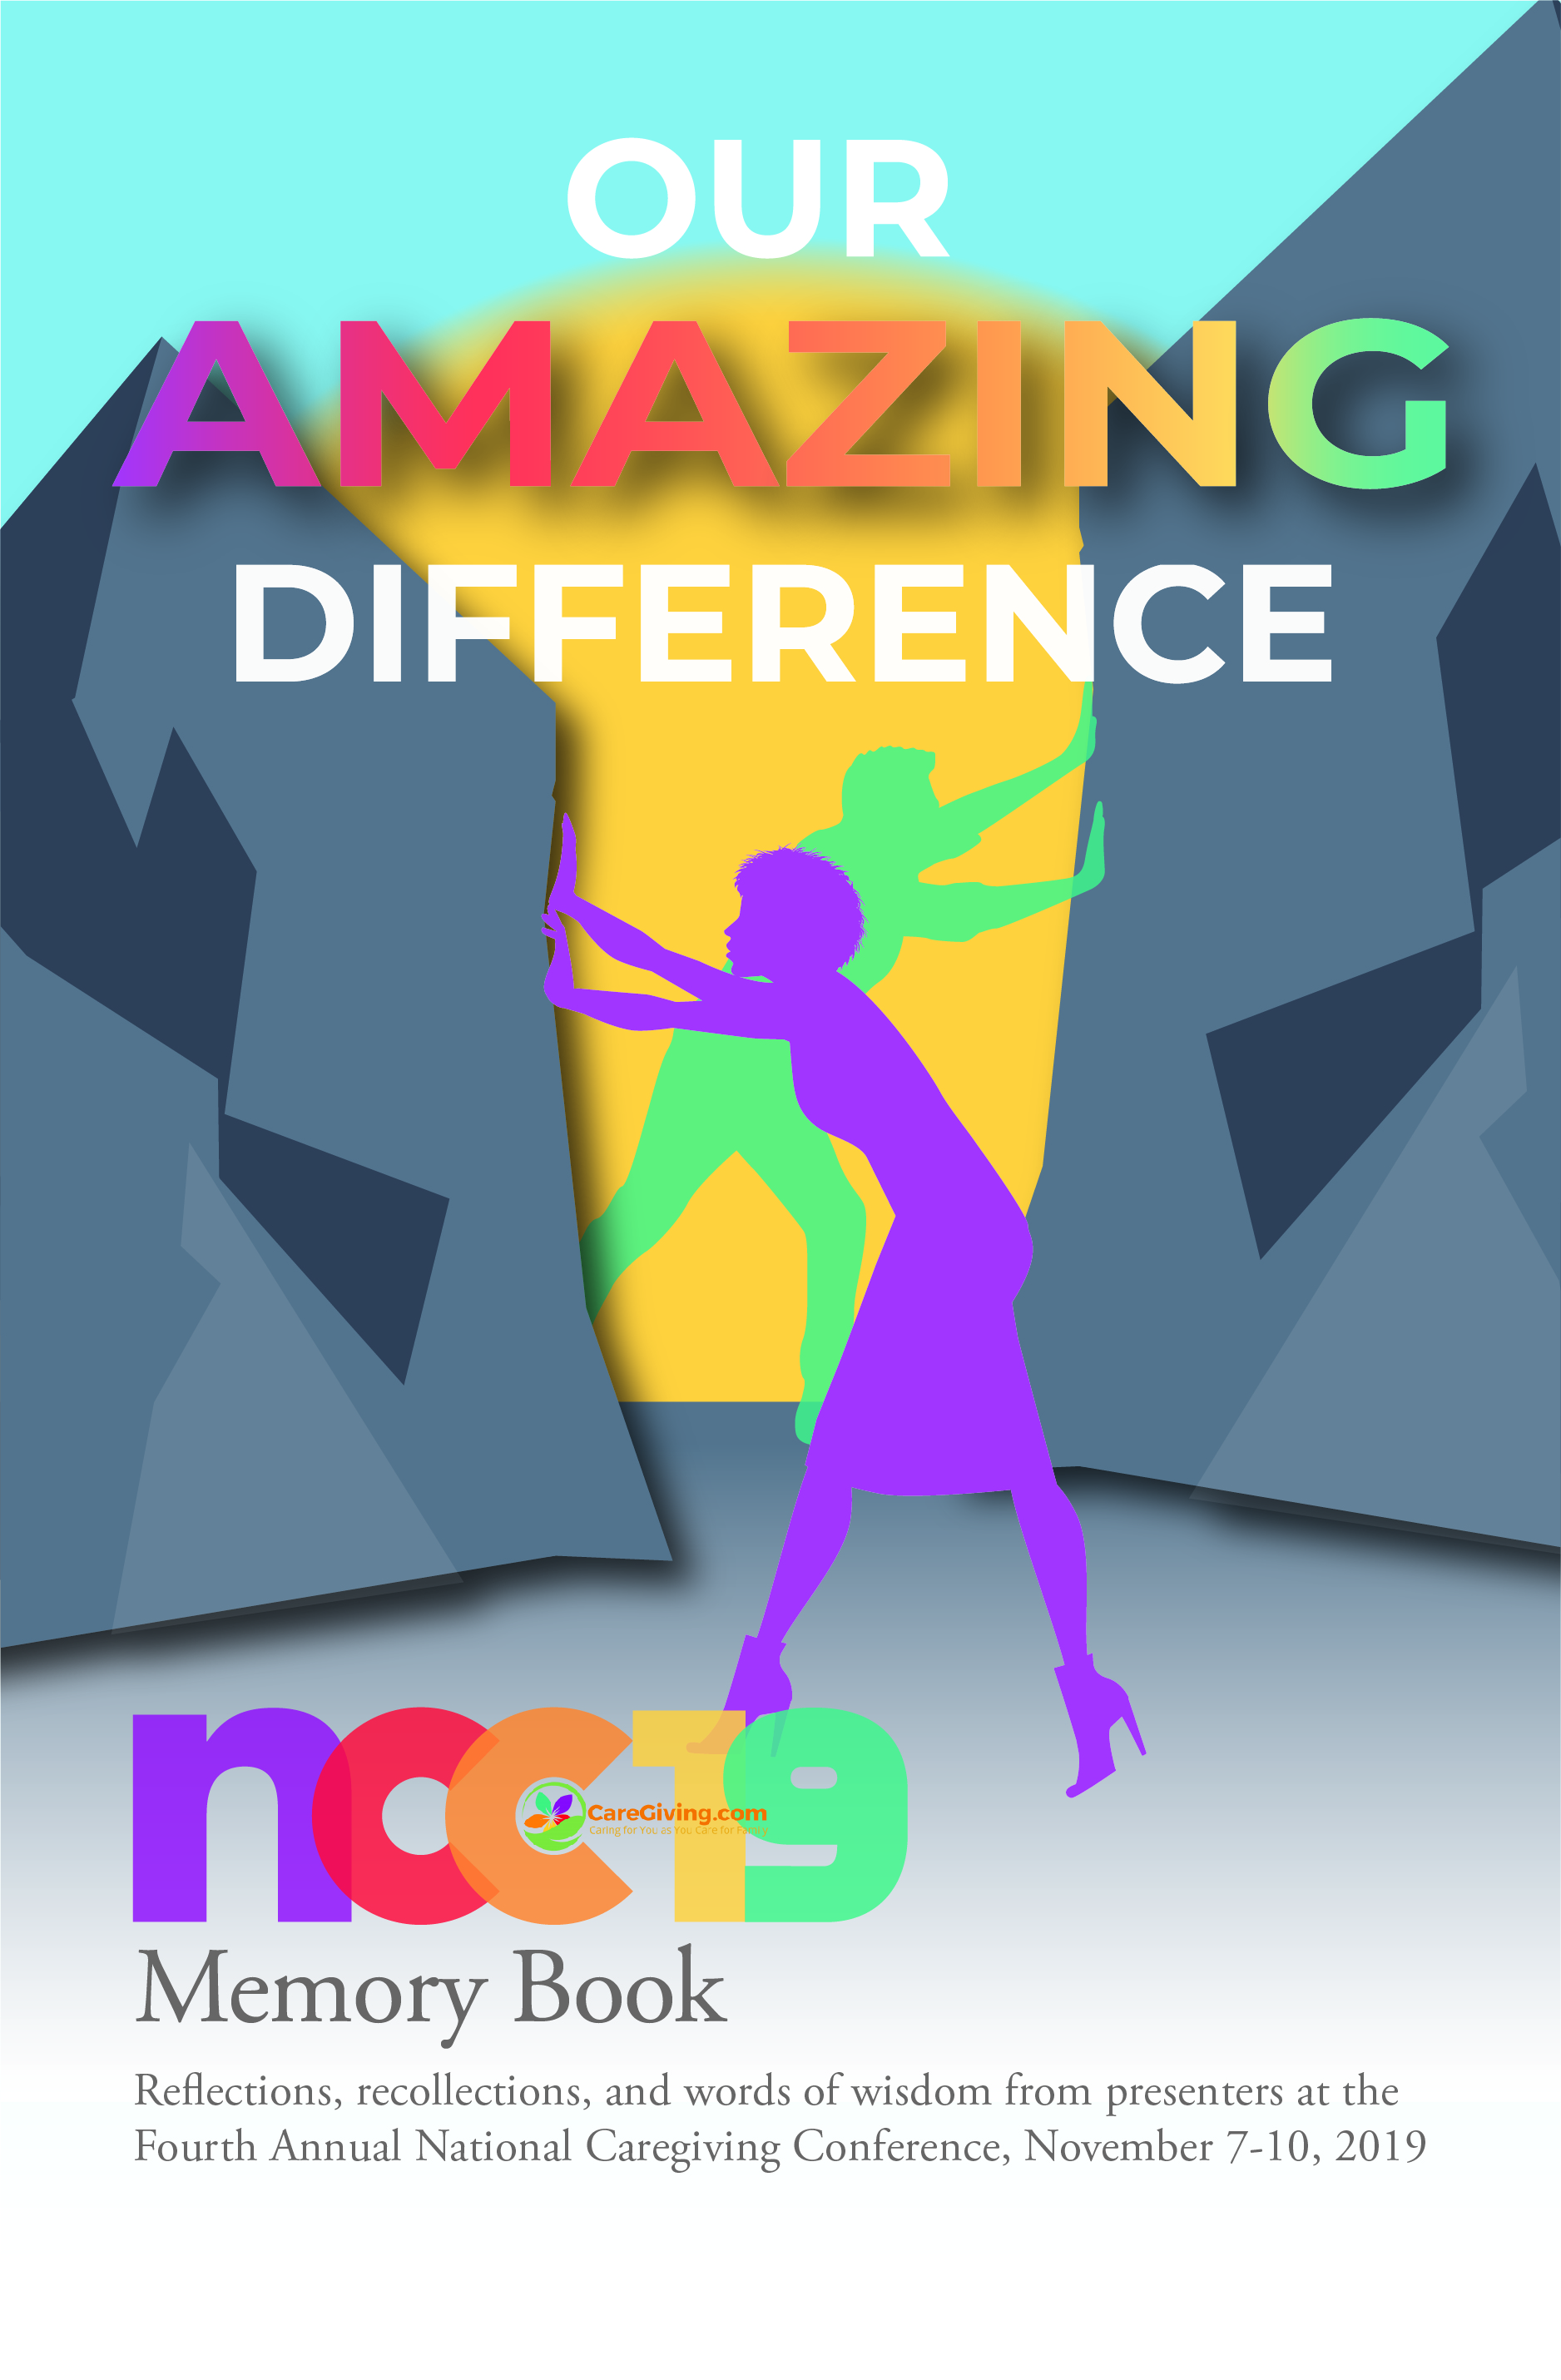 Our Amazing Difference Print book compilation cover